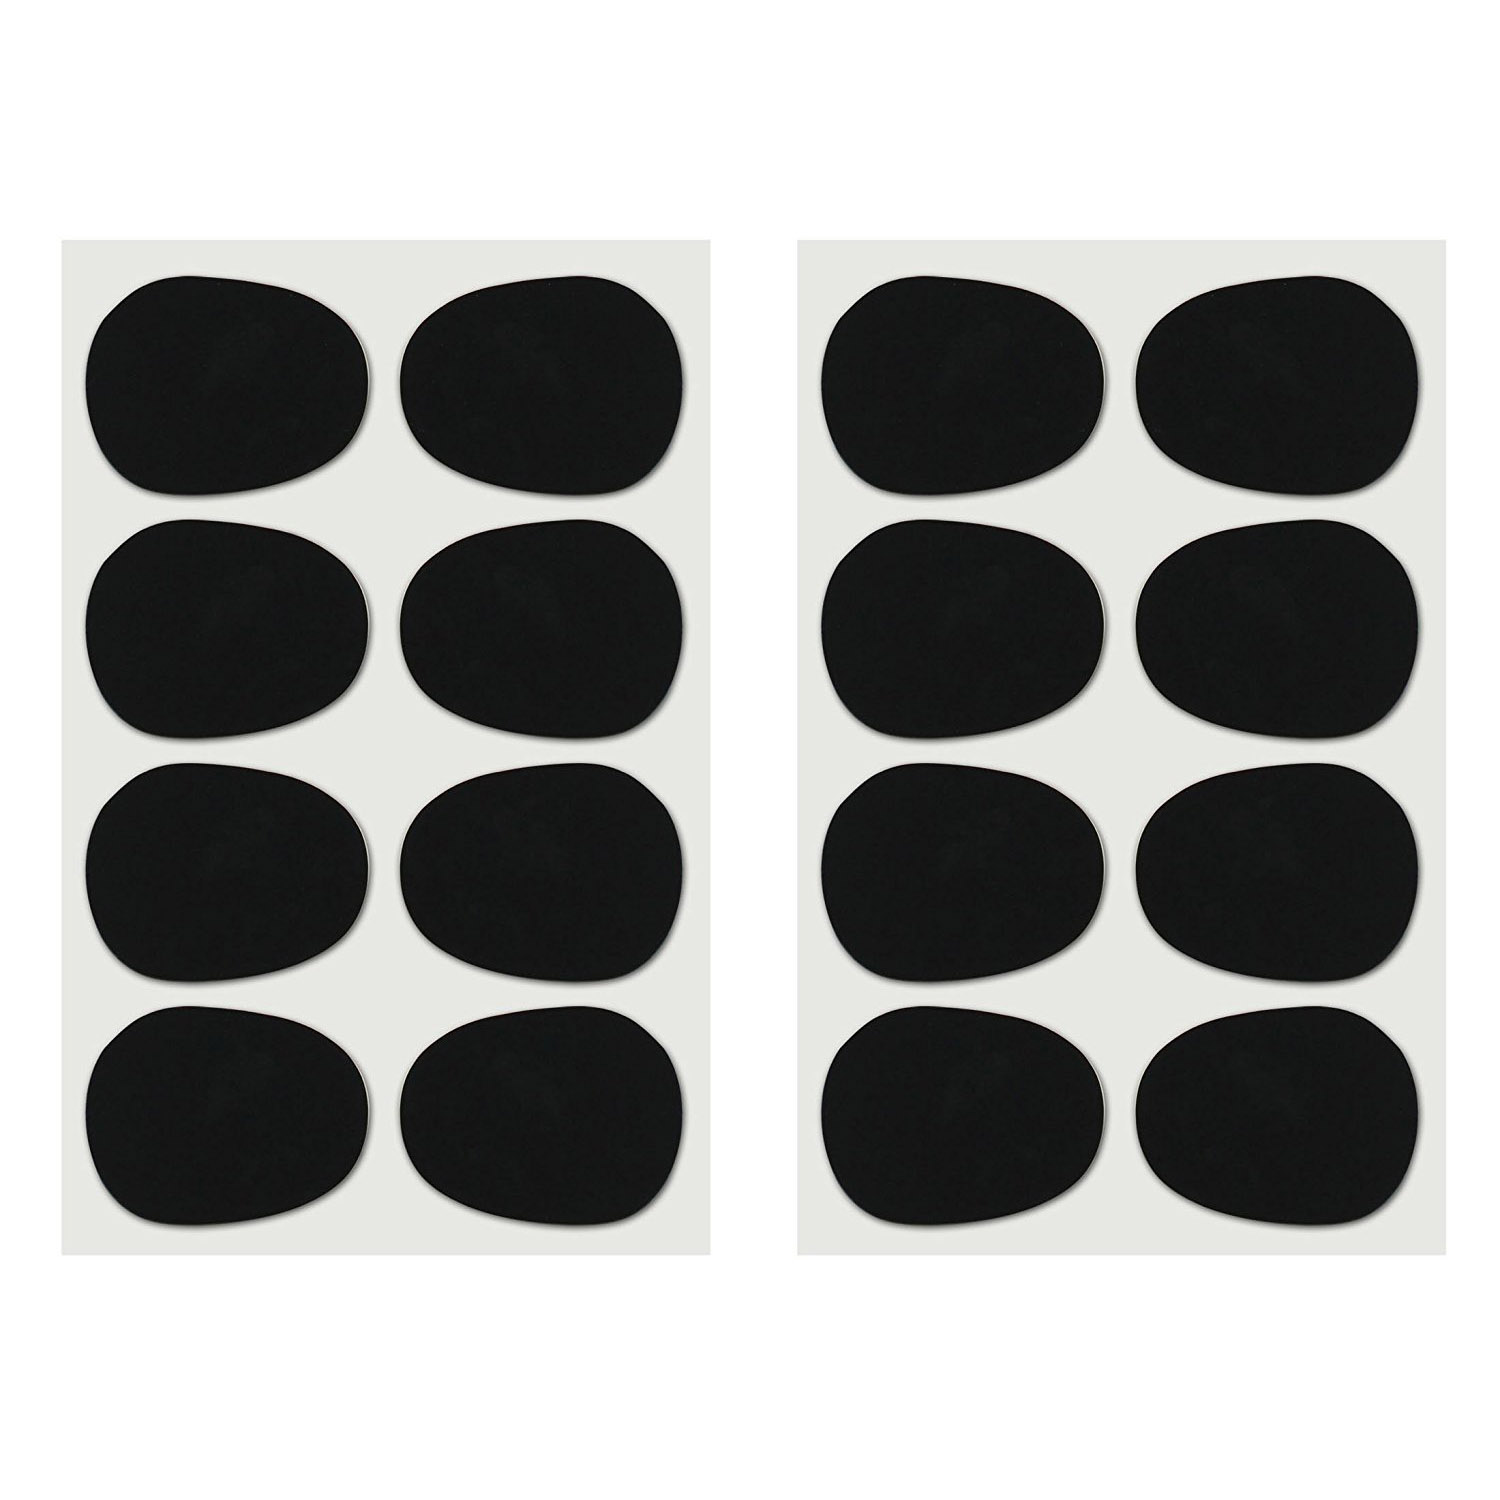 SEWS-16pcs Alto/tenor Sax Clarinet Mouthpiece Patches Pads Cushions, 0.8mm Black, 16 Pack